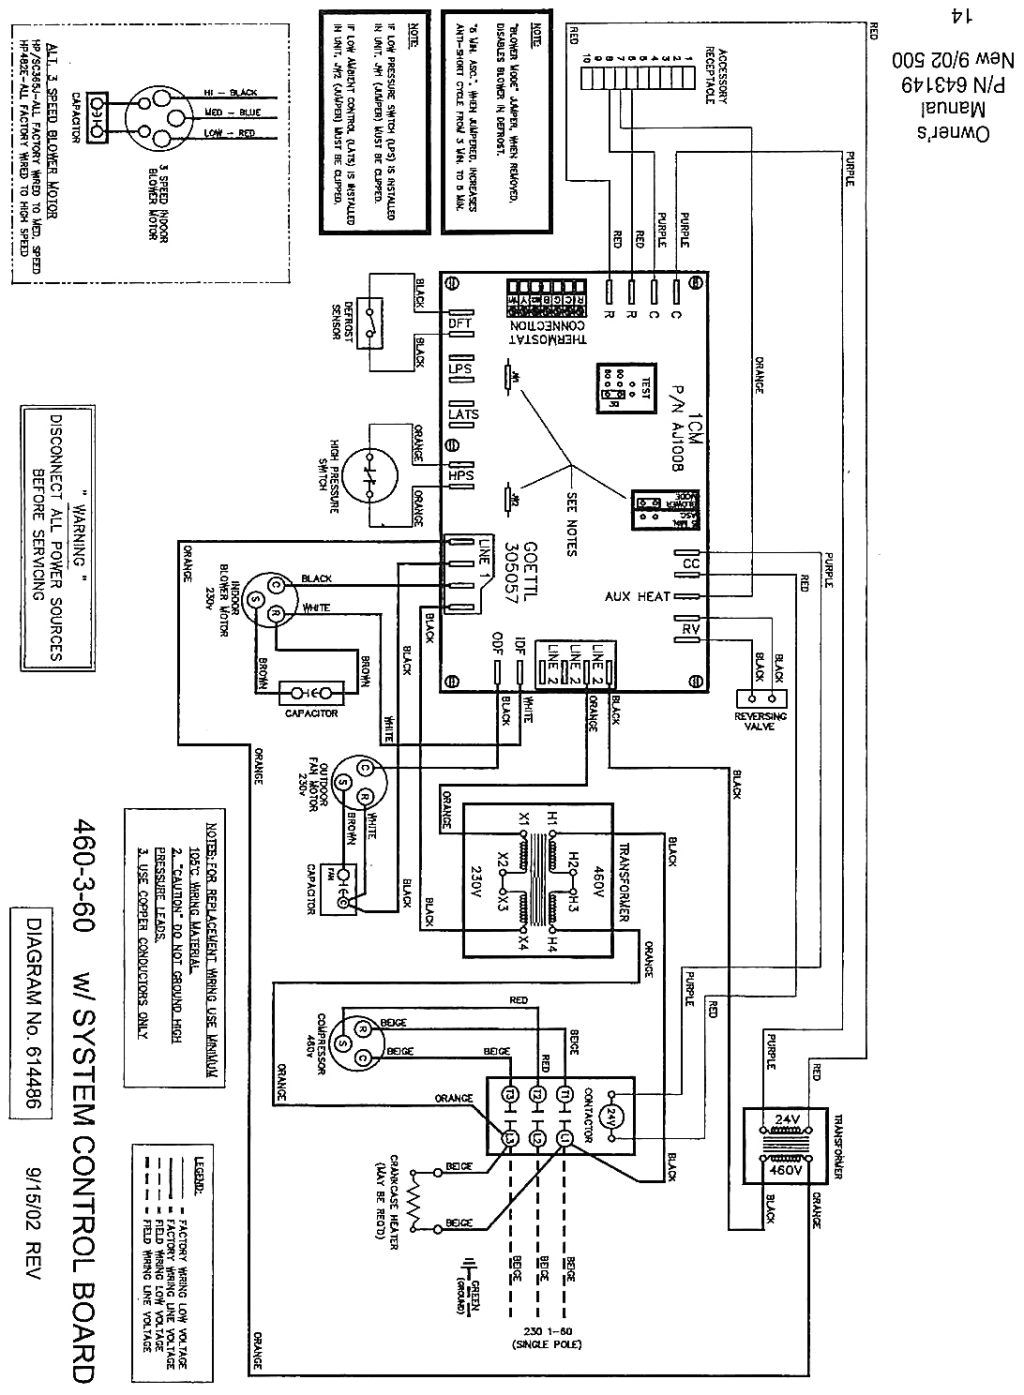 heat strip wiring diagram wiring diagram view carrier heat strip wiring diagram standard heat pump wiring